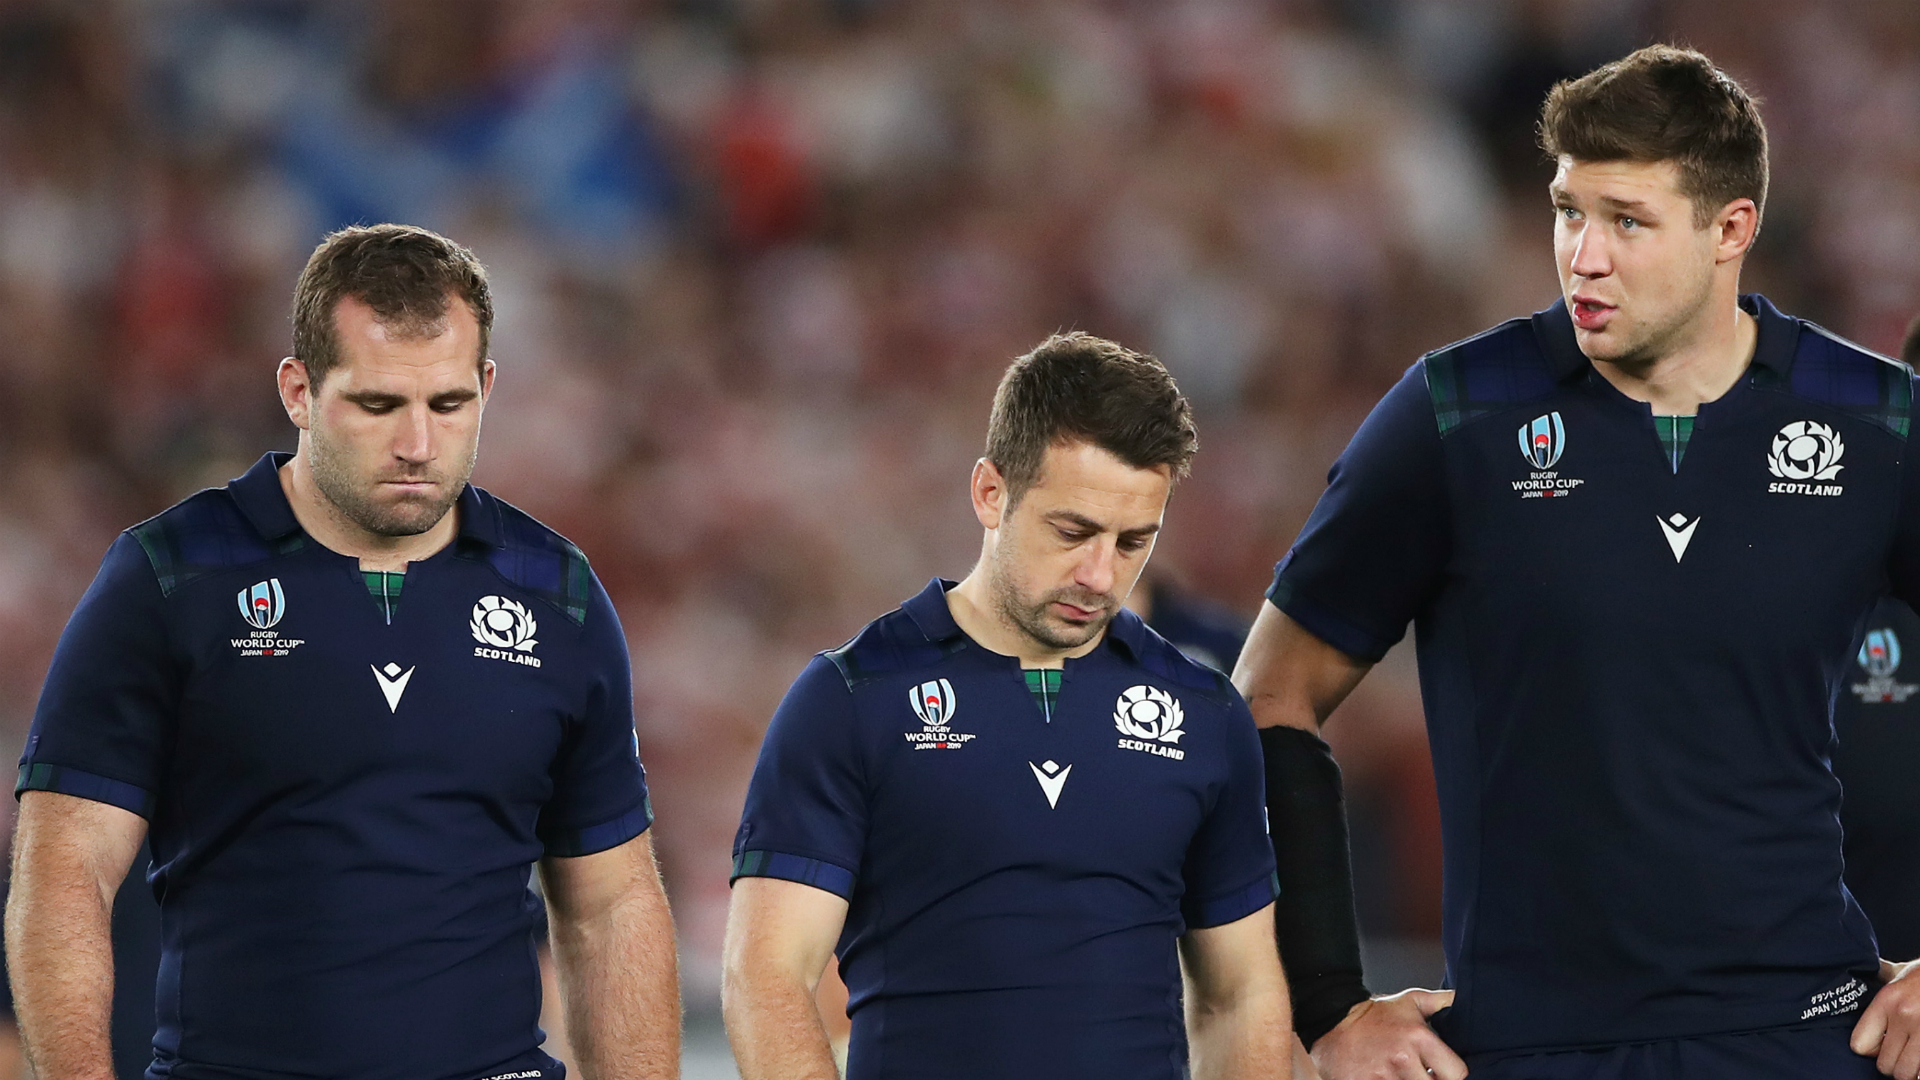 Rugby World Cup 2019: Scotland skipper Laidlaw to weigh up his future